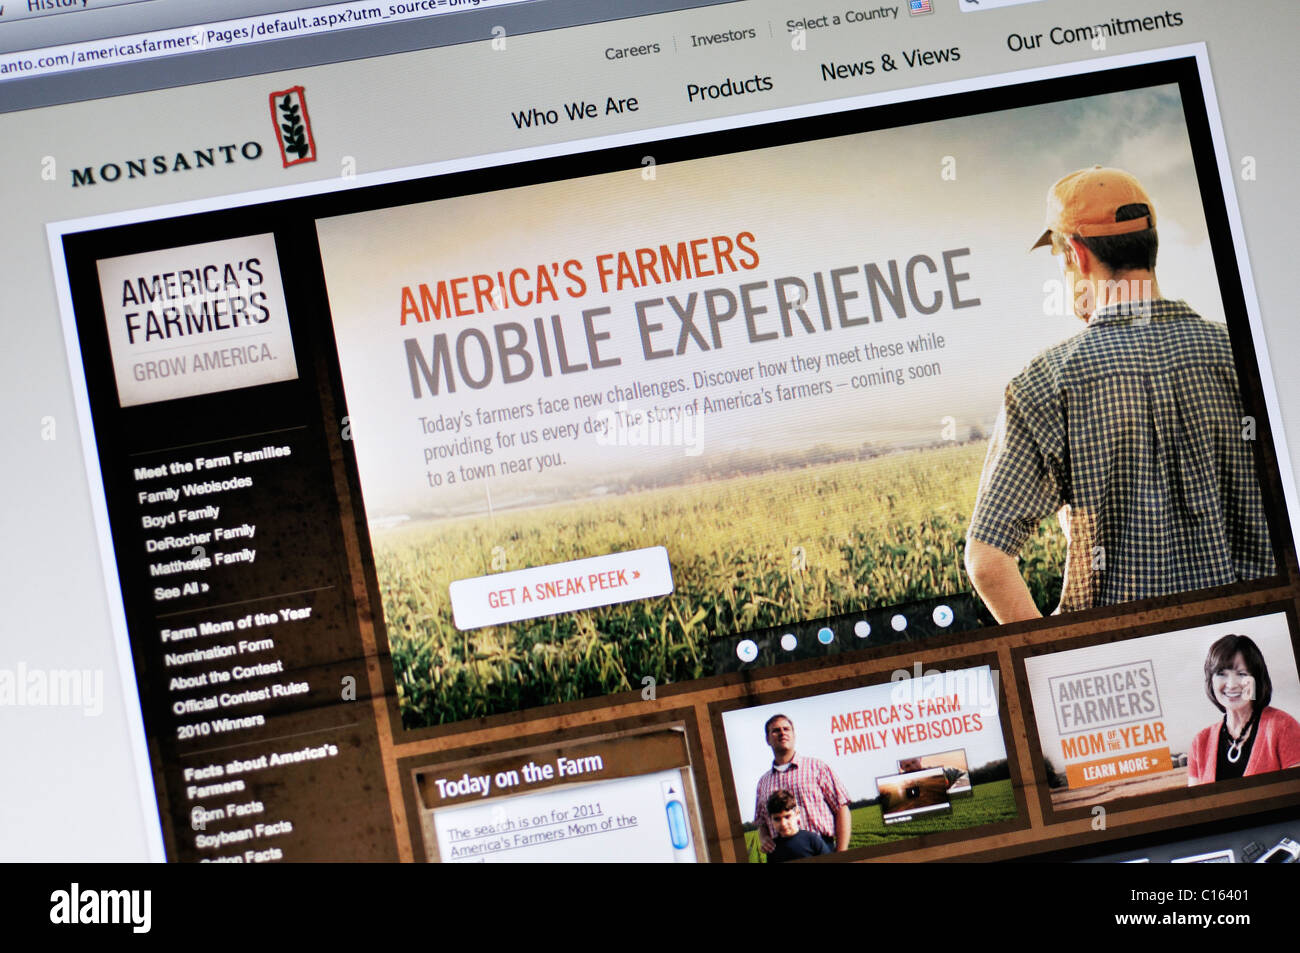 Monsanto website - genetically modified food and seeds corporation - Stock Image